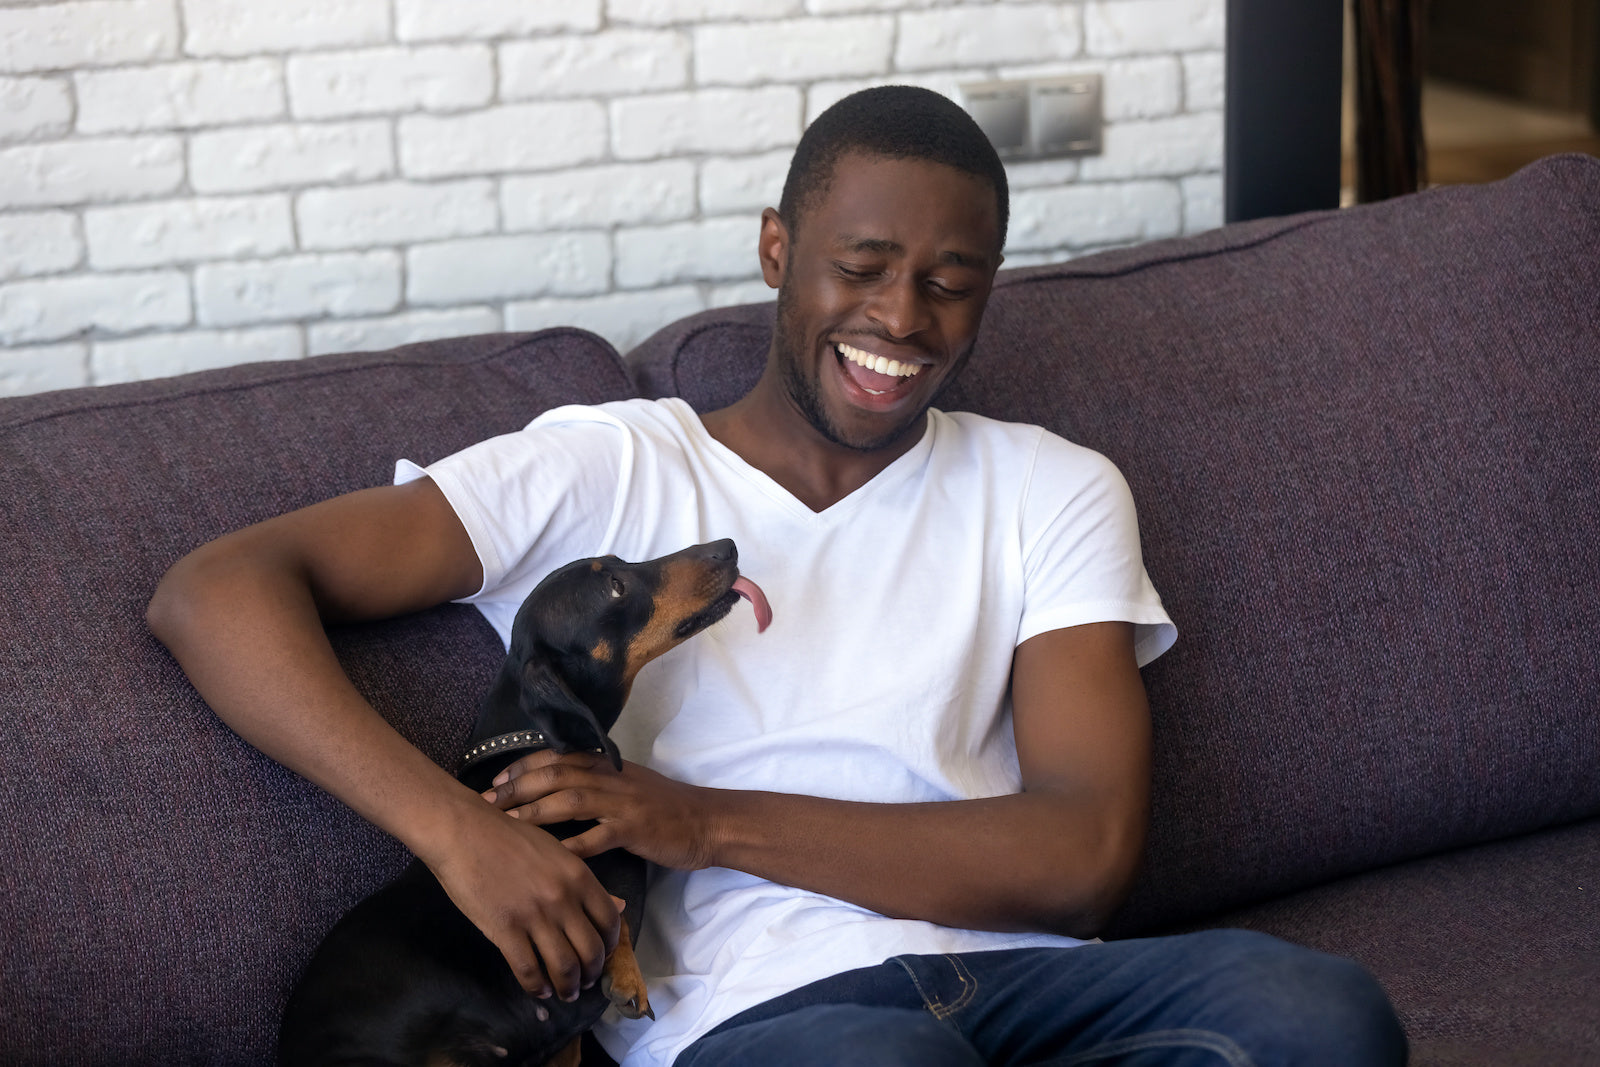 Dog has bad gas suddenly: A man laughs with his dachshund